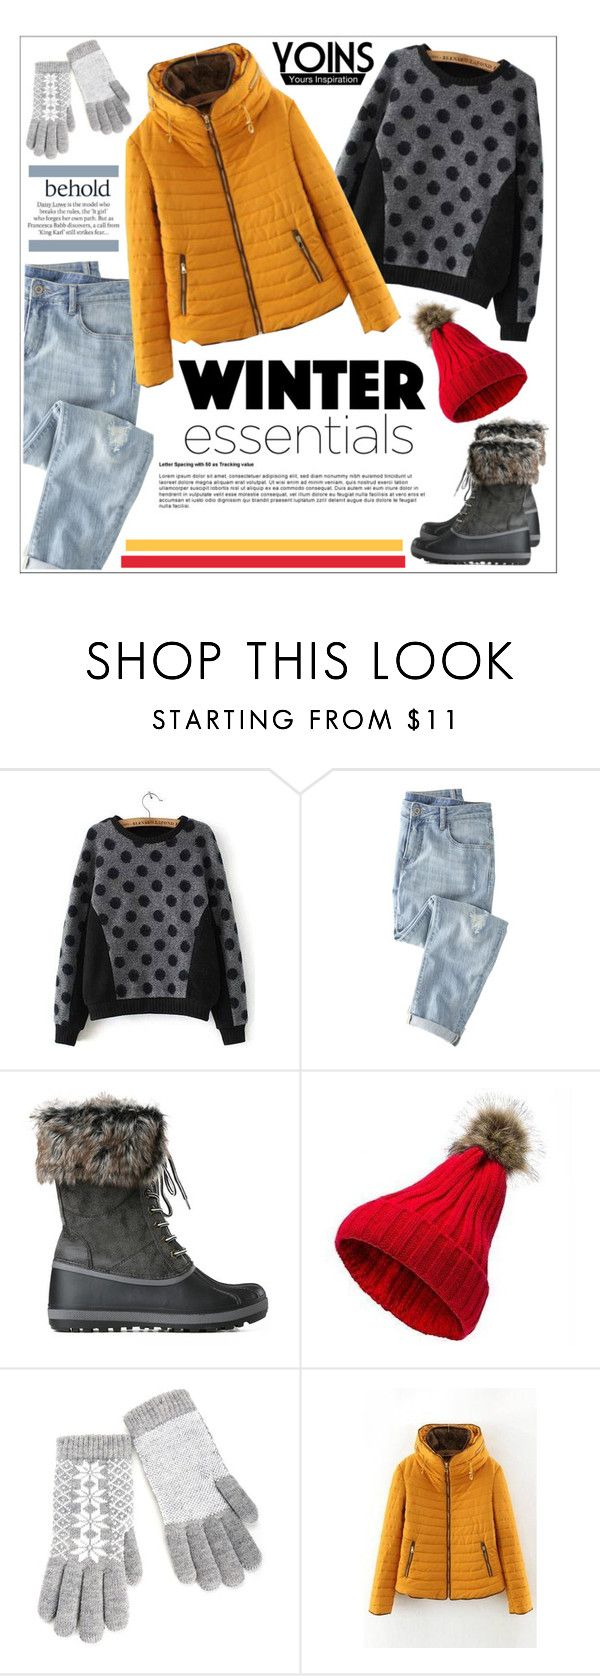 """Yoins"" by water-polo ❤ liked on Polyvore featuring мода, Wrap, ASOS, polyvoreeditorial и yoins"